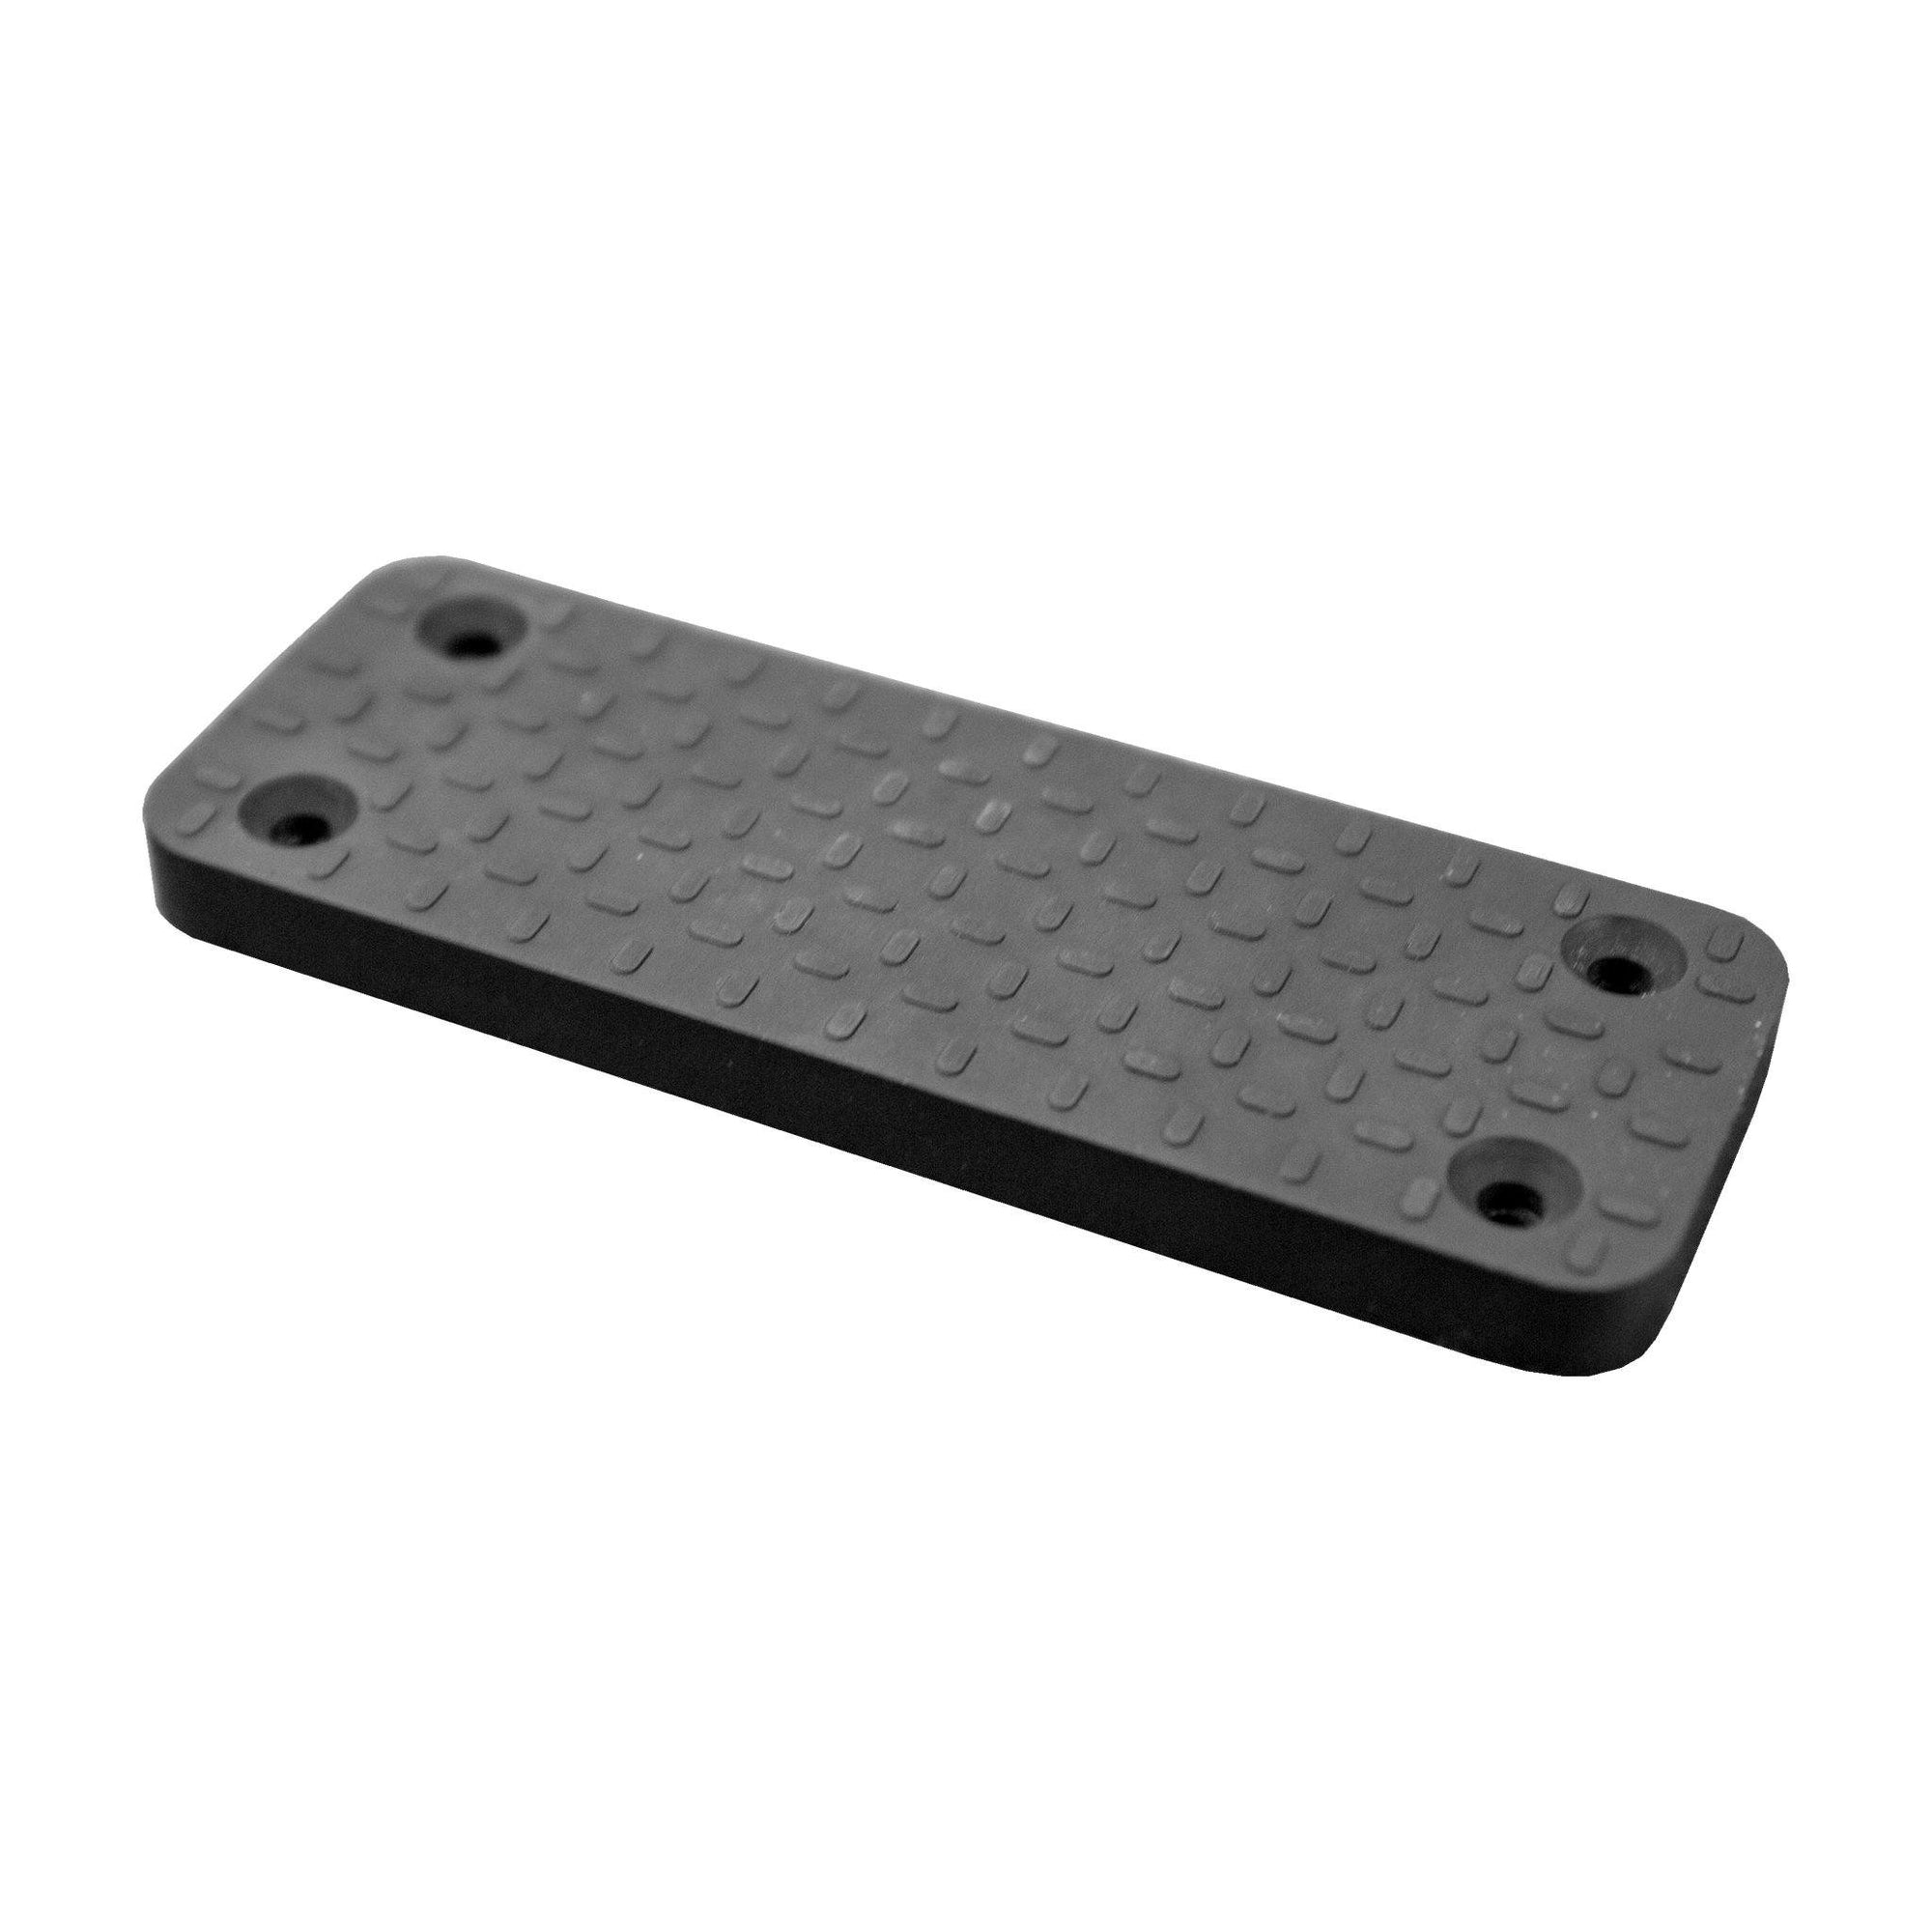 Accessories - Tracker MAG-45 Gun Magnet - Holds 45 Pounds